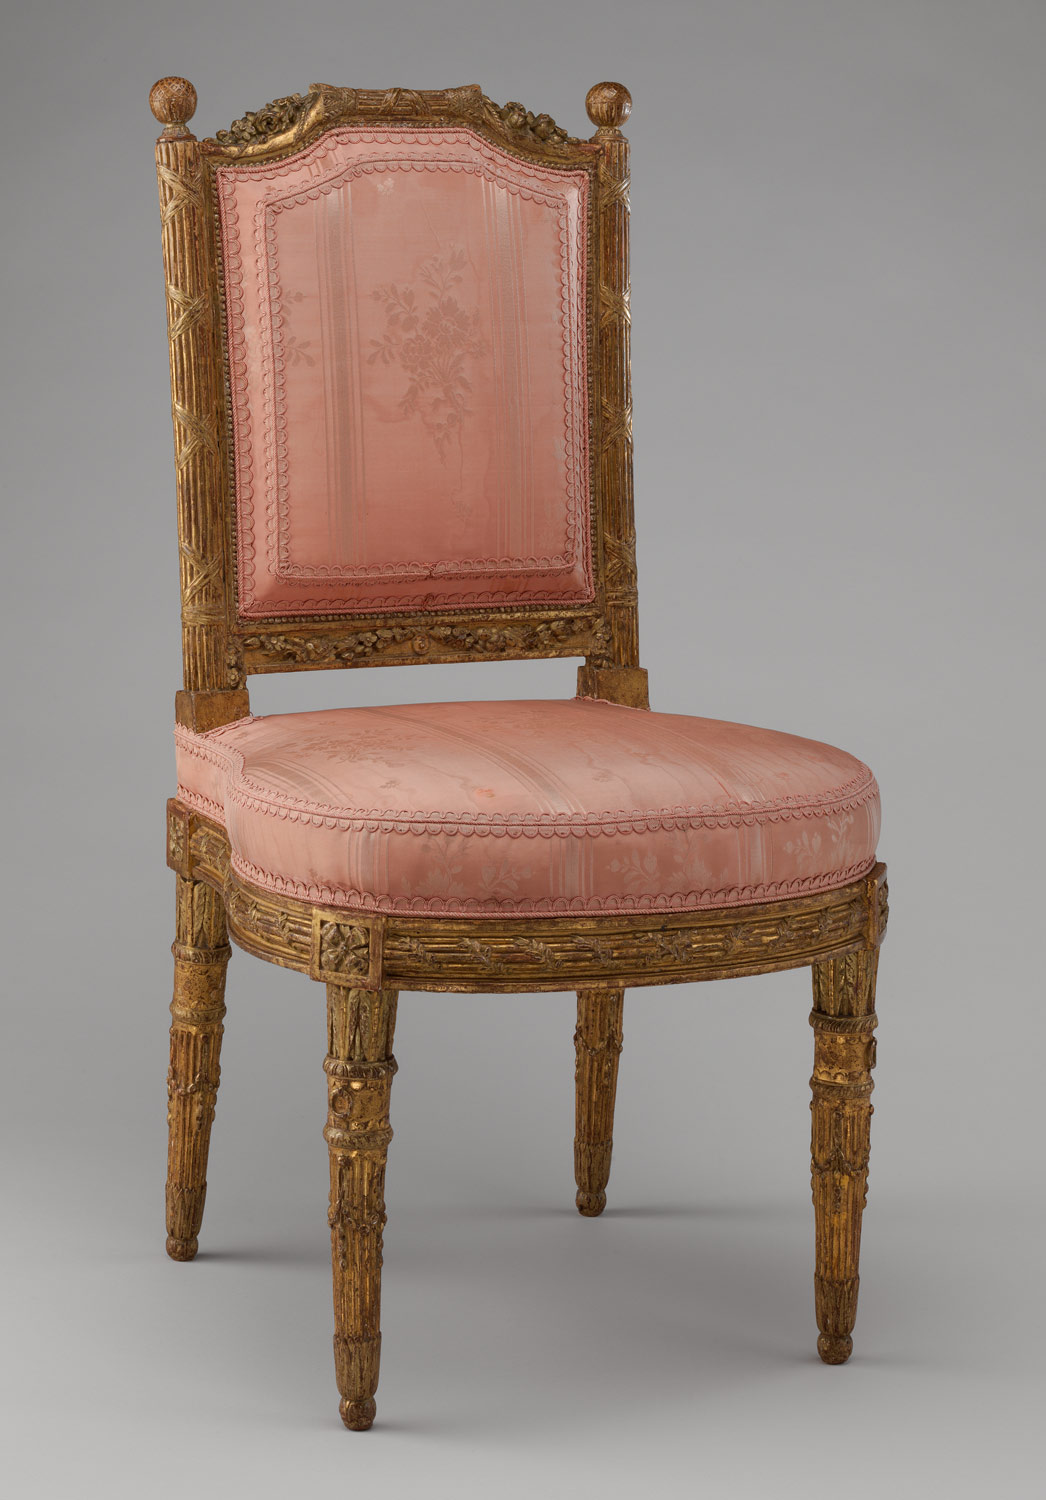 Designer Furniture In French French Furniture In The Eighteenth Century Seat Furniture